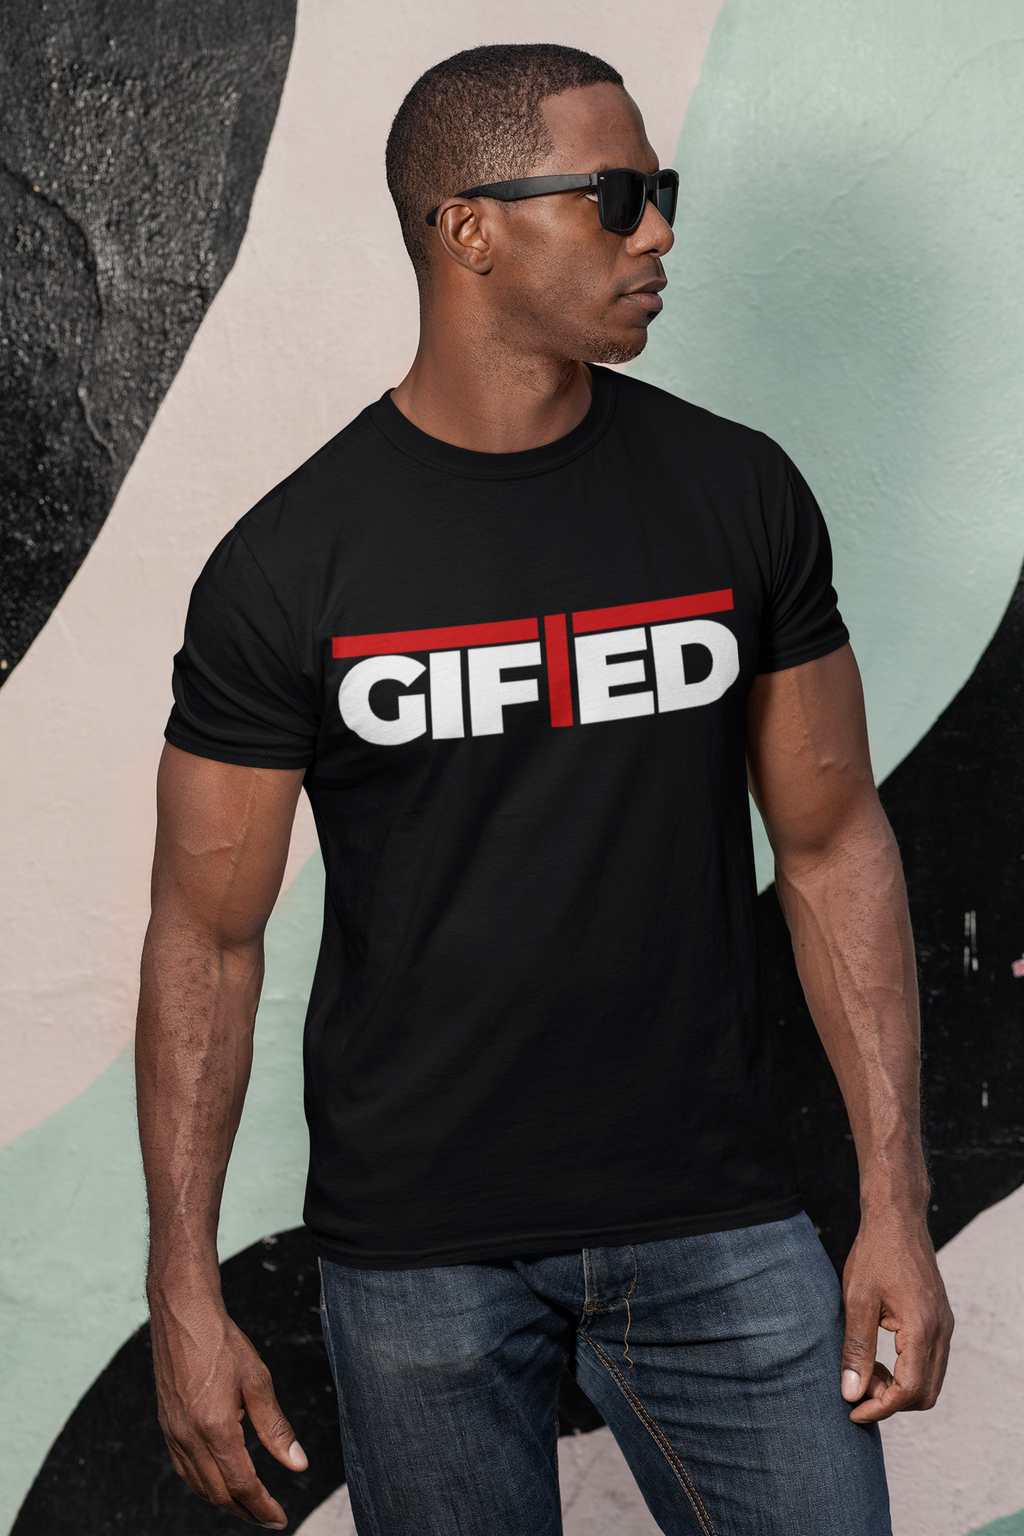 Men's GIFTED T - shirt